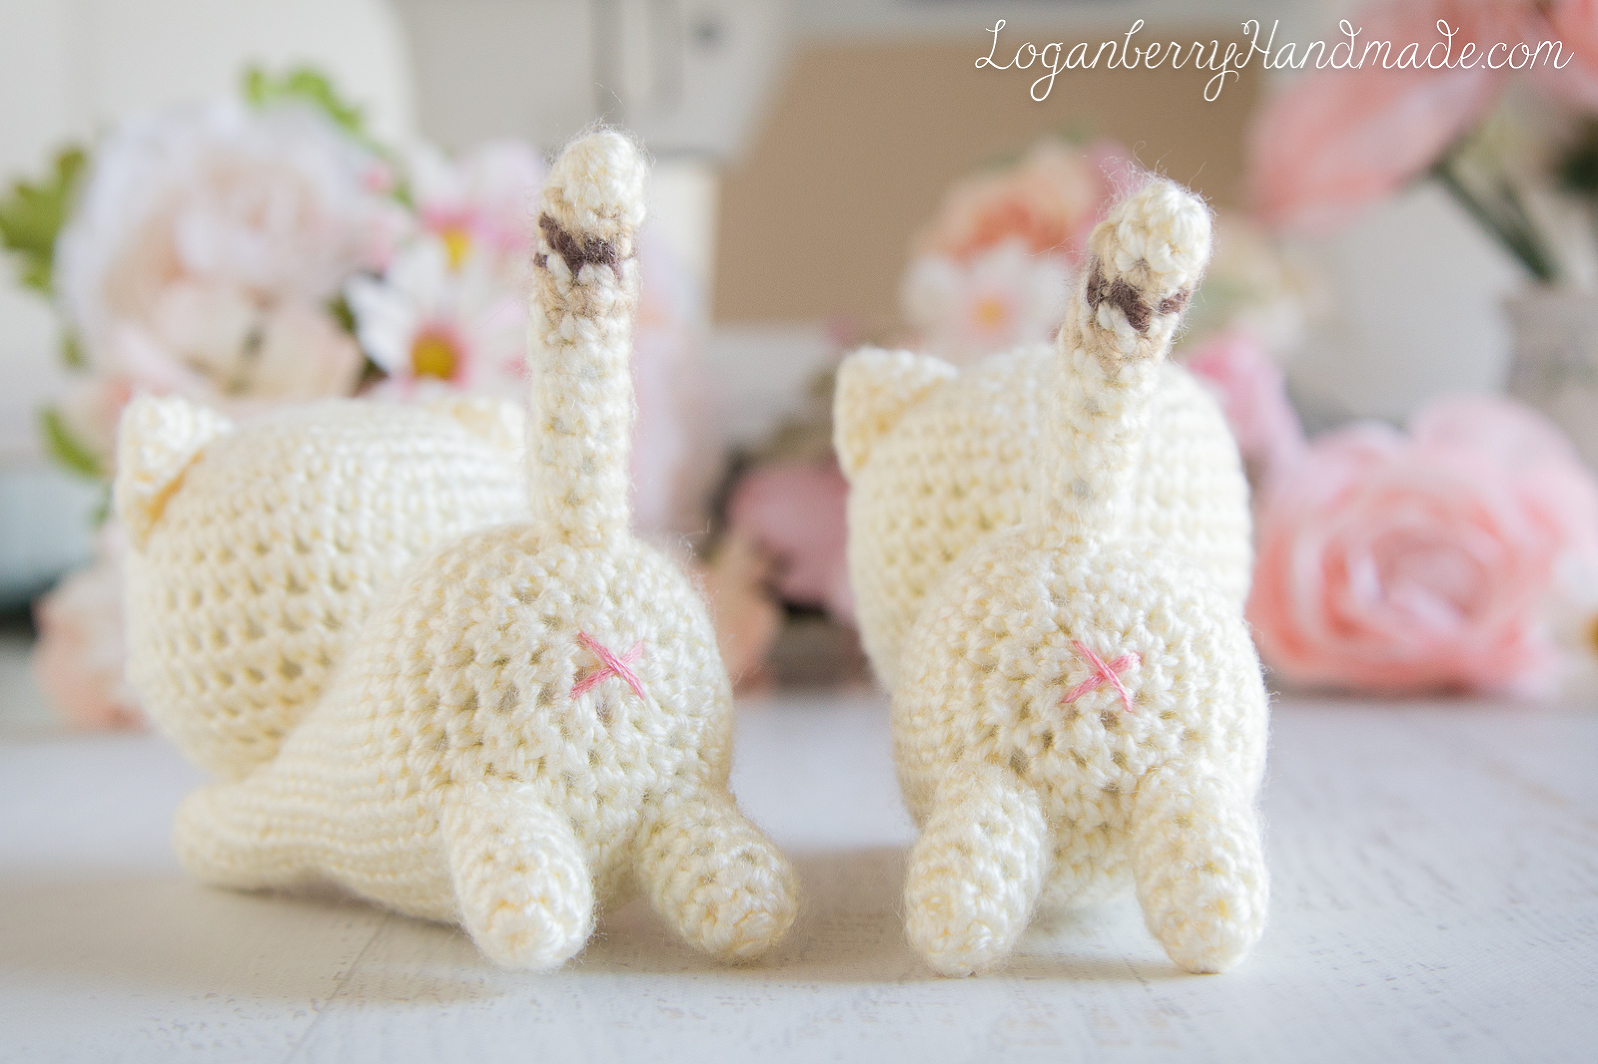 Amigurumi Female Cat Free Crochet Pattern - Crochet.msa.plus | 1064x1598